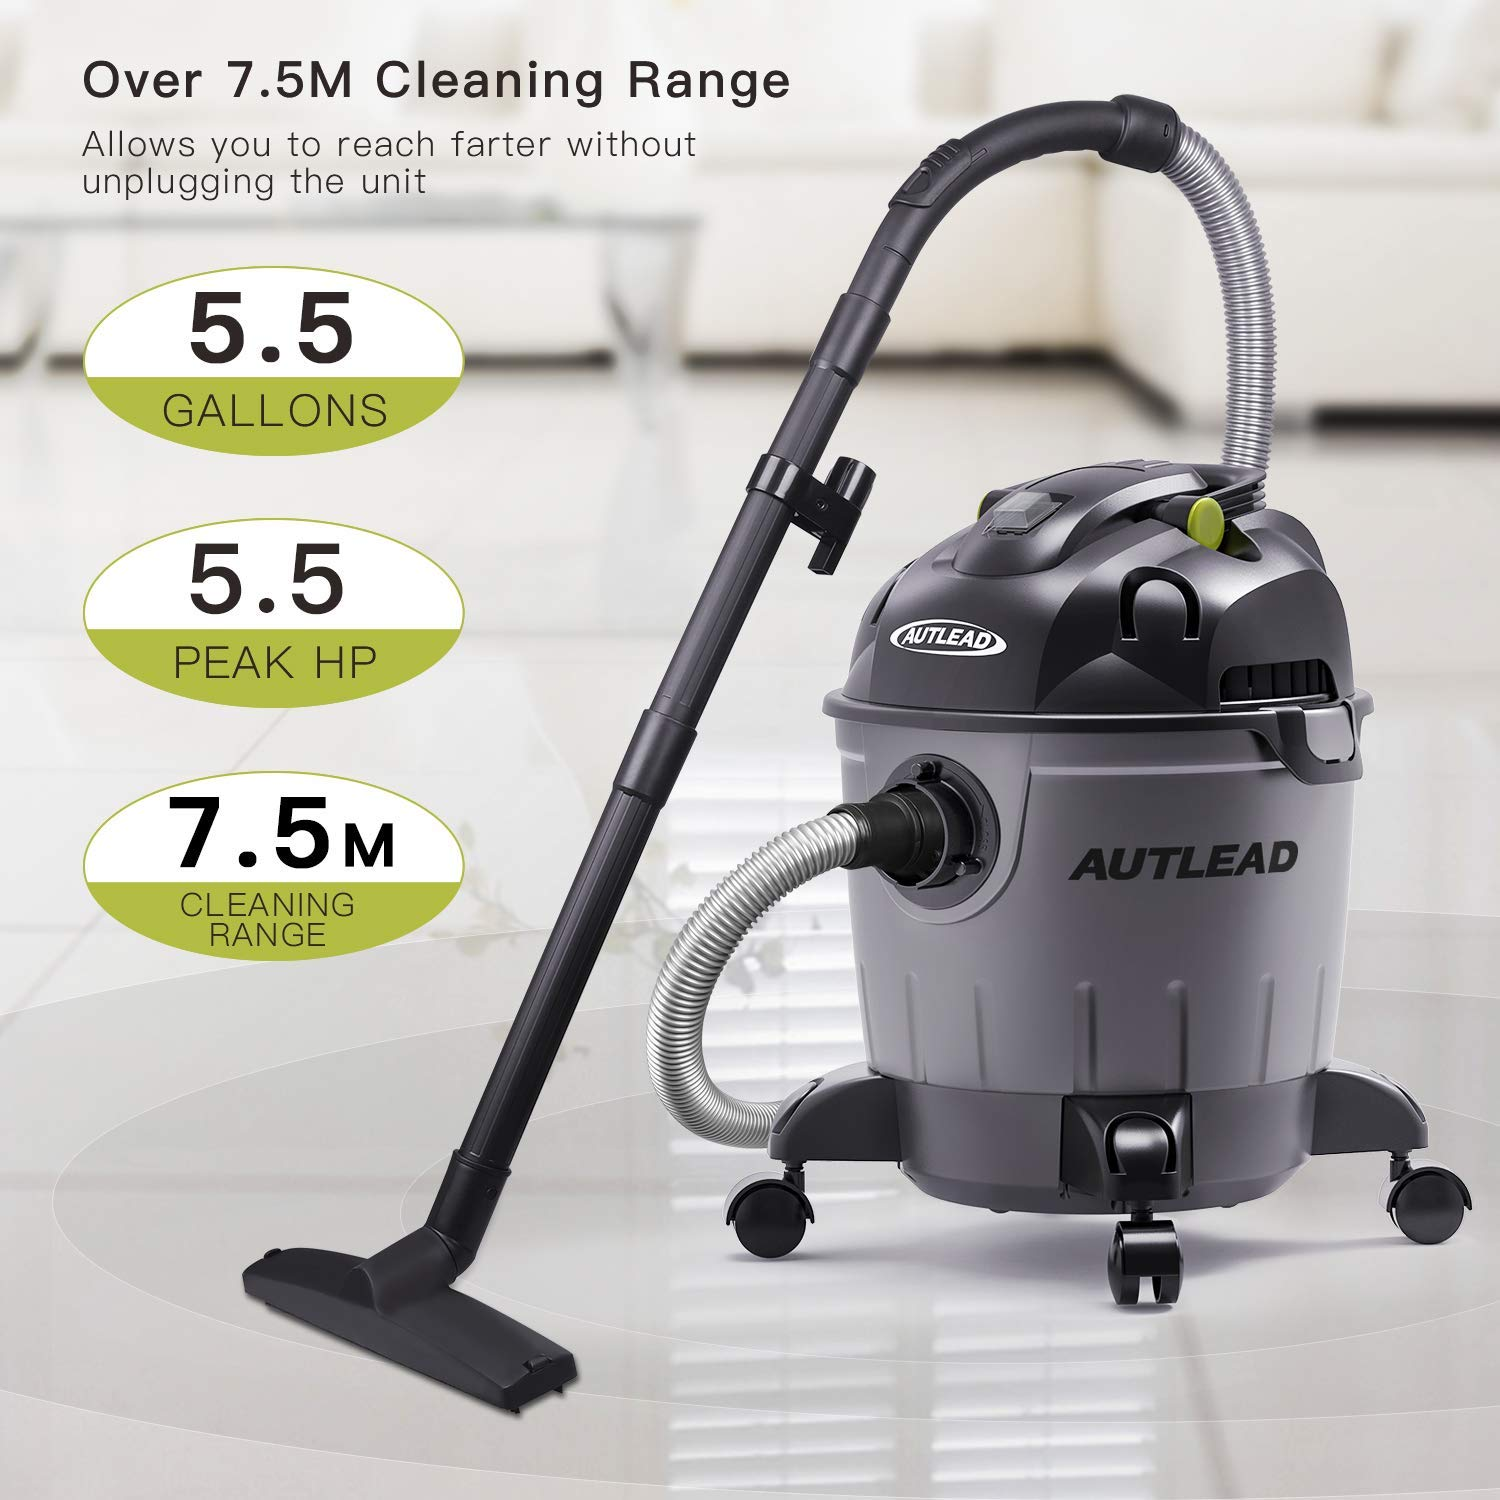 AUTLEAD Wet Dry Vacuum WDS01A 5 Gallon Pure Copper Motor 5.5 HP Wet/Dry/Blow 3 in 1 Shop Vac, Stable Round Bucket Design with Pulley System, HEPA Disposable Bag, 3 Brush Included[US Stock] by AUTLEAD (Image #2)